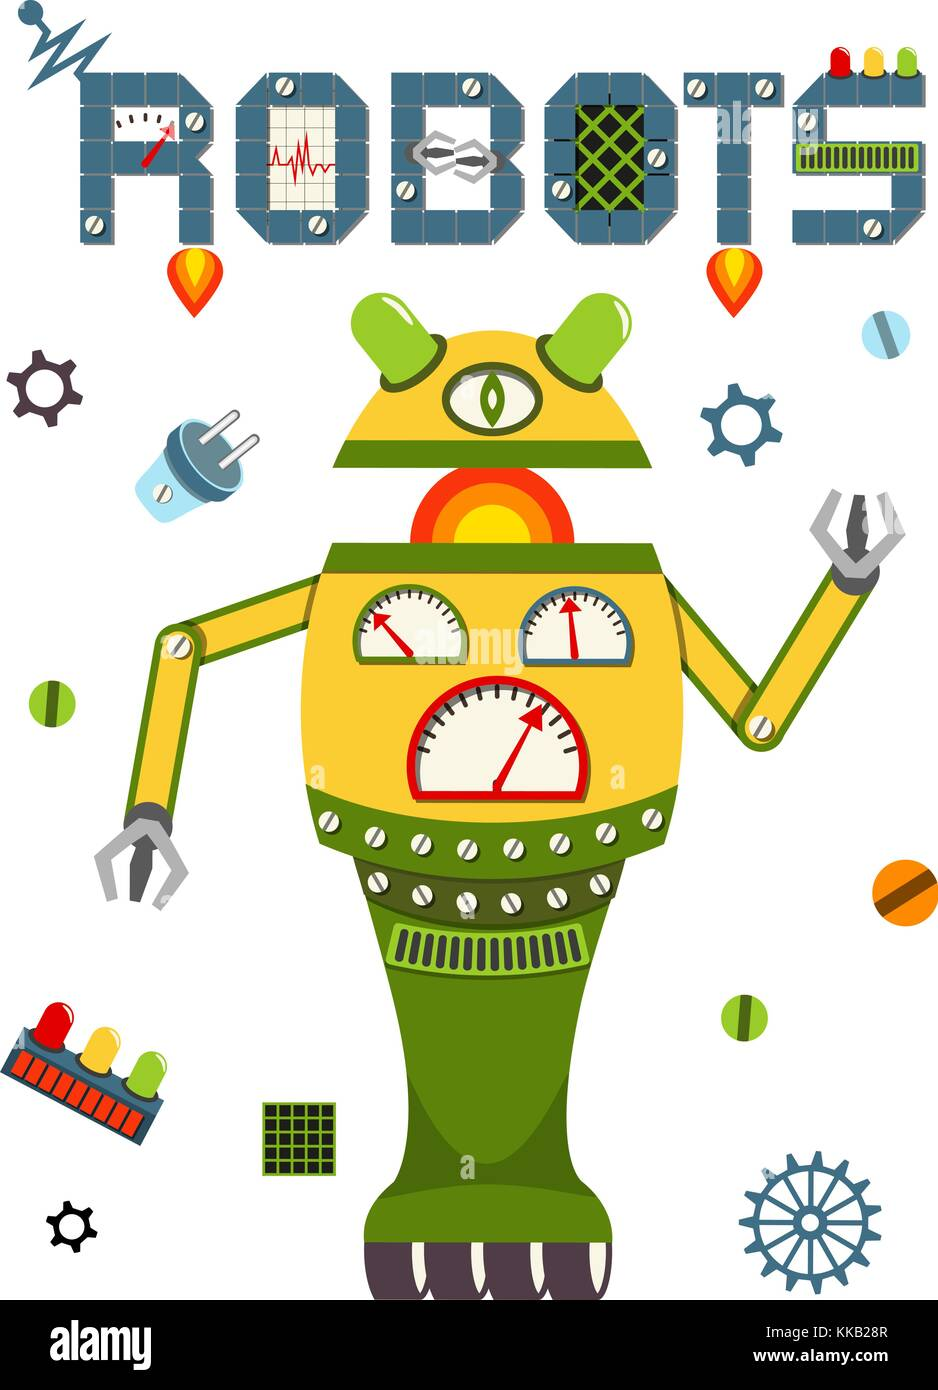 Bright Colorful Poster With Vintage Robot And Tech Stock Vector